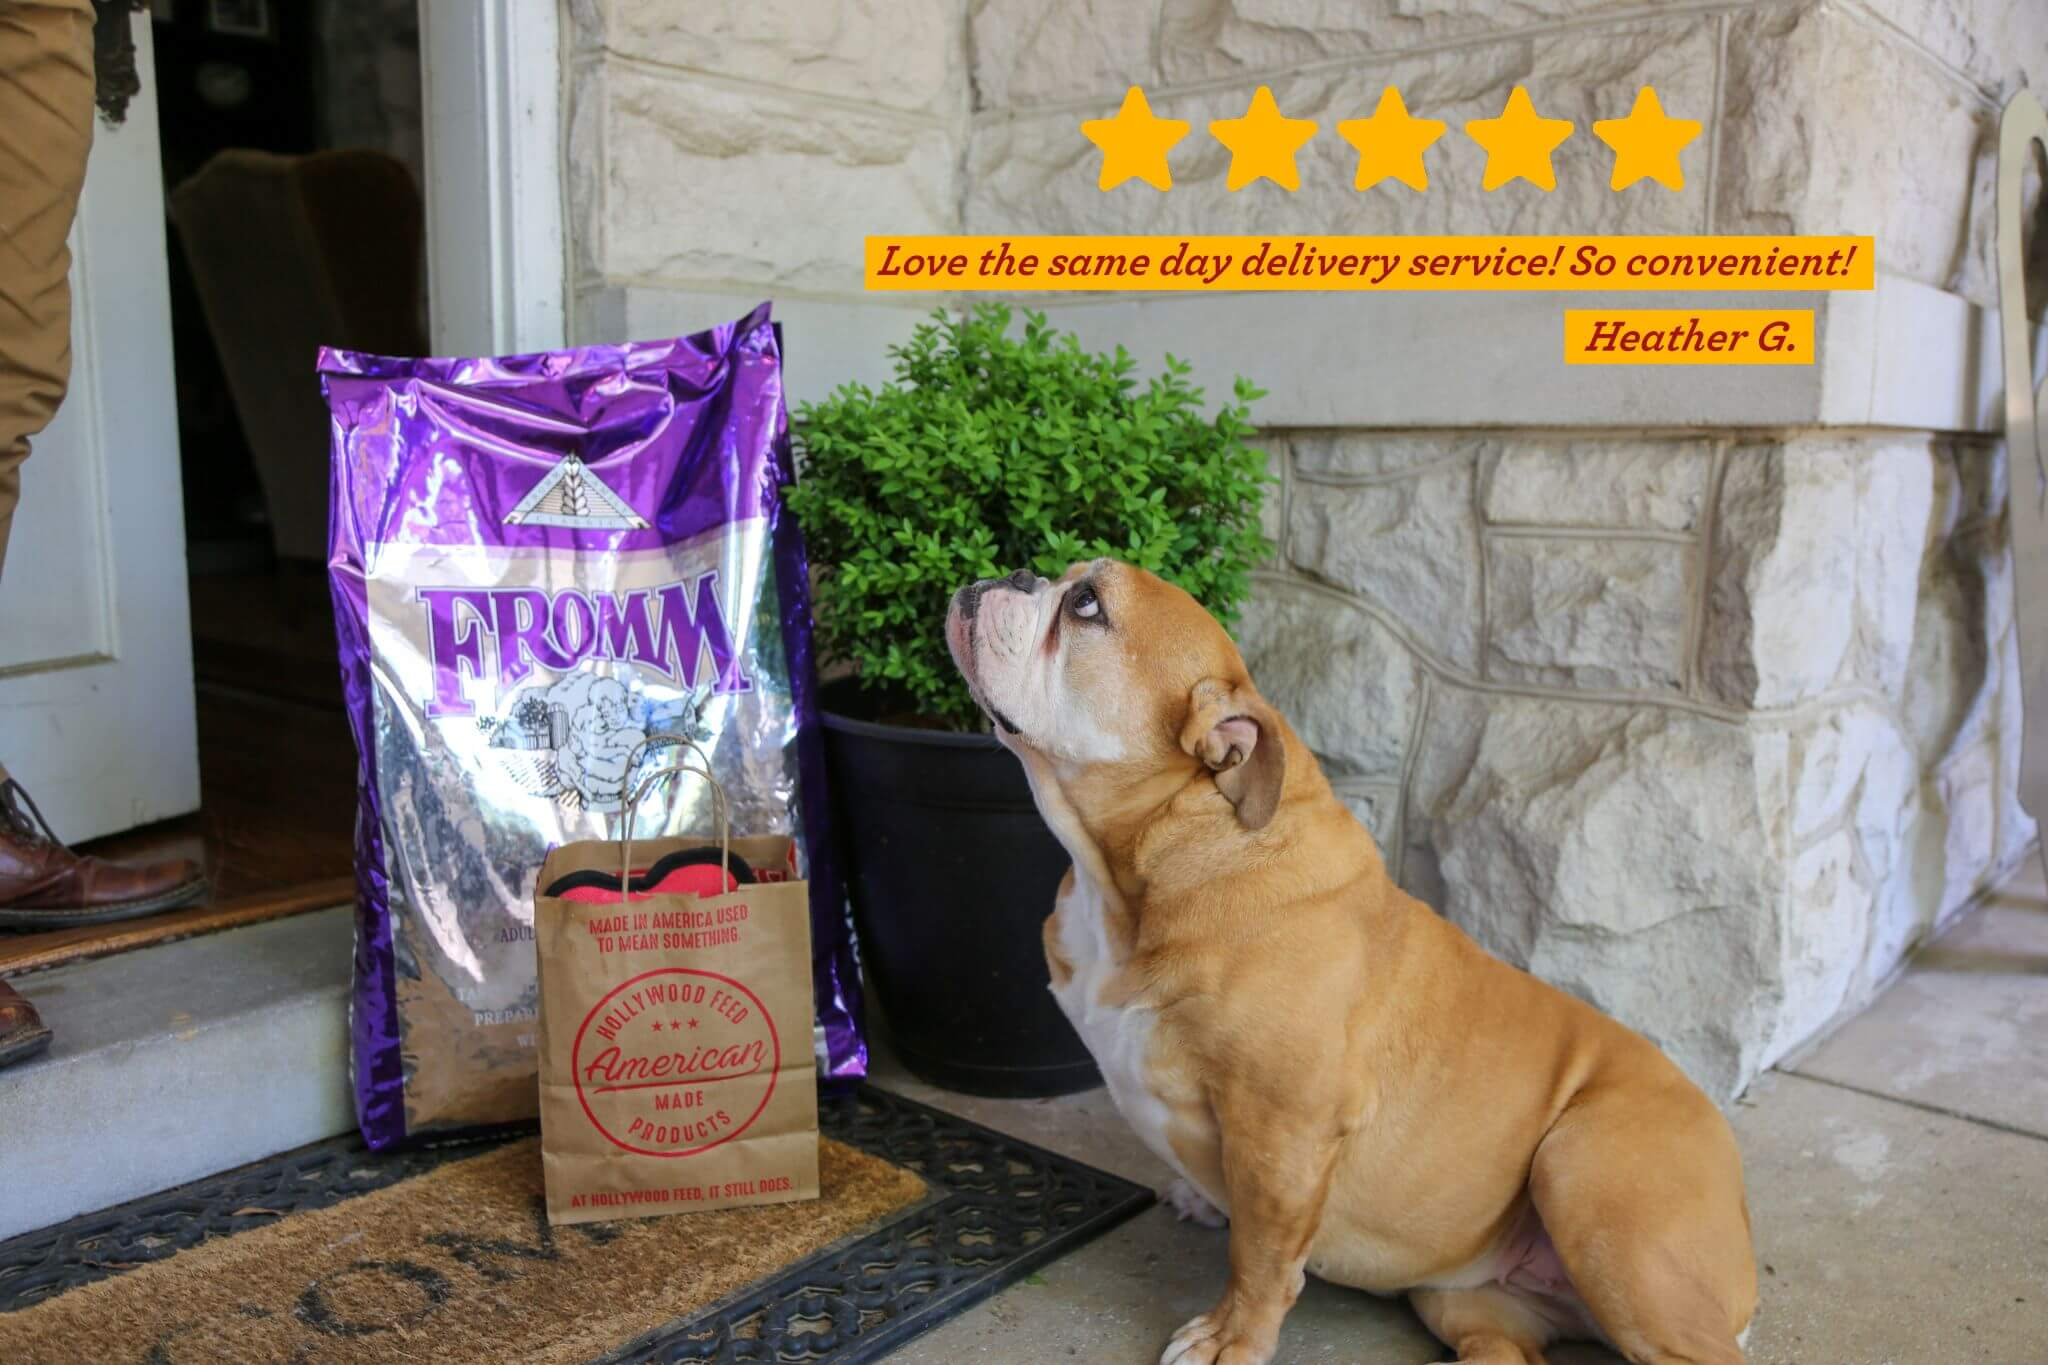 Dog Sitting outside with Same Day Delivery Items. Love the same day delivery service! So Convenient! - Heather G